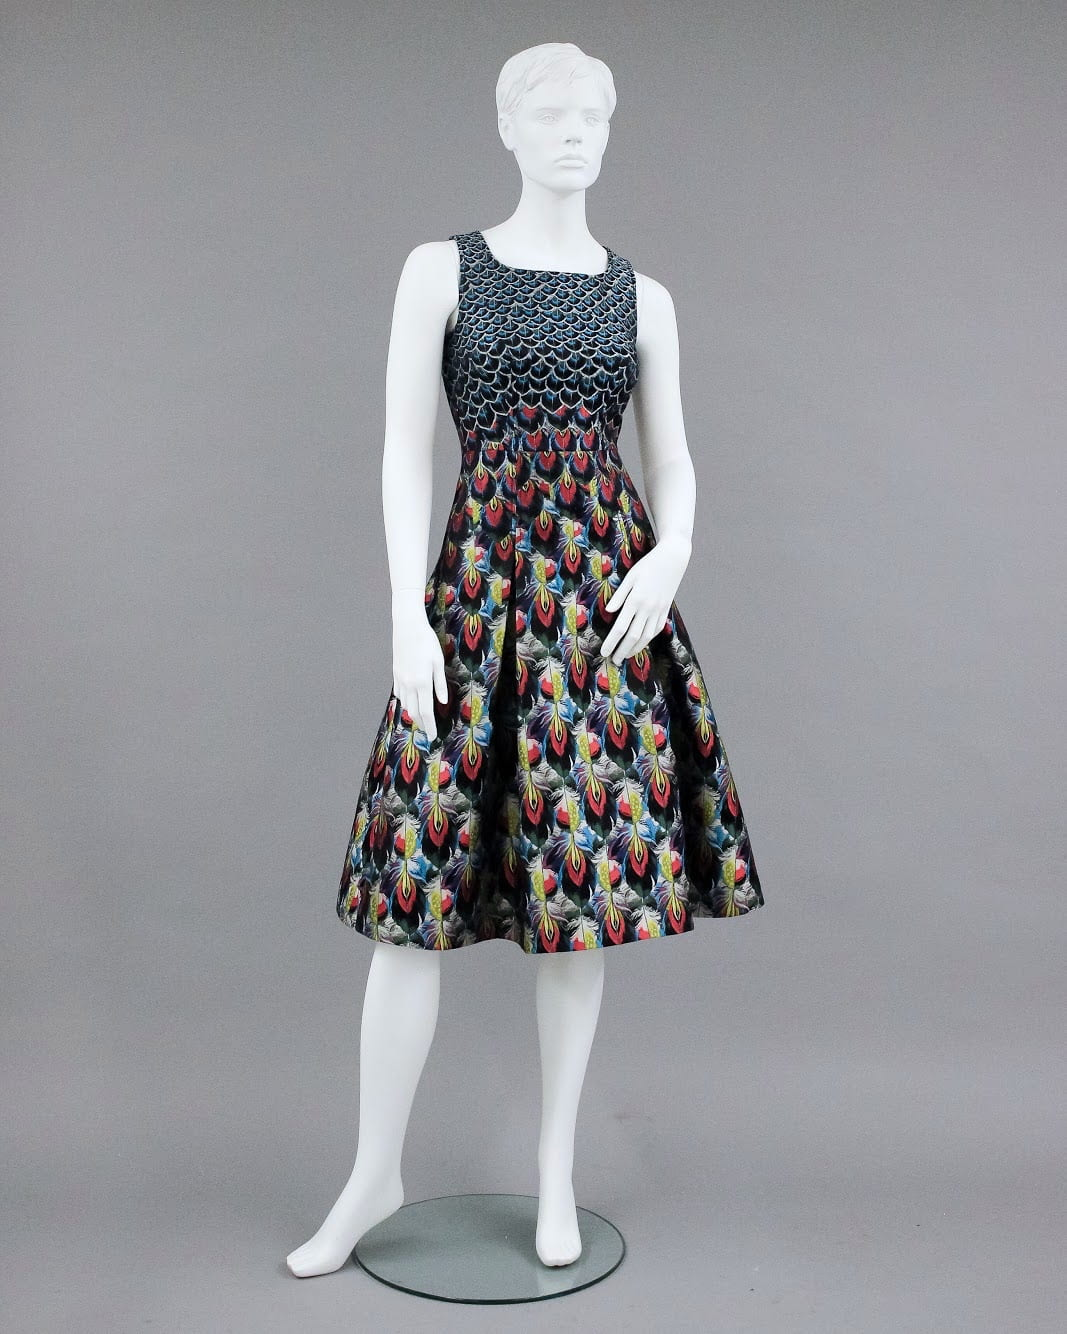 """""""Talon"""" evening dress with jacquard design of peacock feathers. Designed by Mary Katrantzou for her Resort 2018 collection, and inspired by Baron Rothschild's extensive nineteenth-century taxidermy collection. On loan from the Texas Fashion Collection, University of North Texas (identification: 2018.006.017)"""